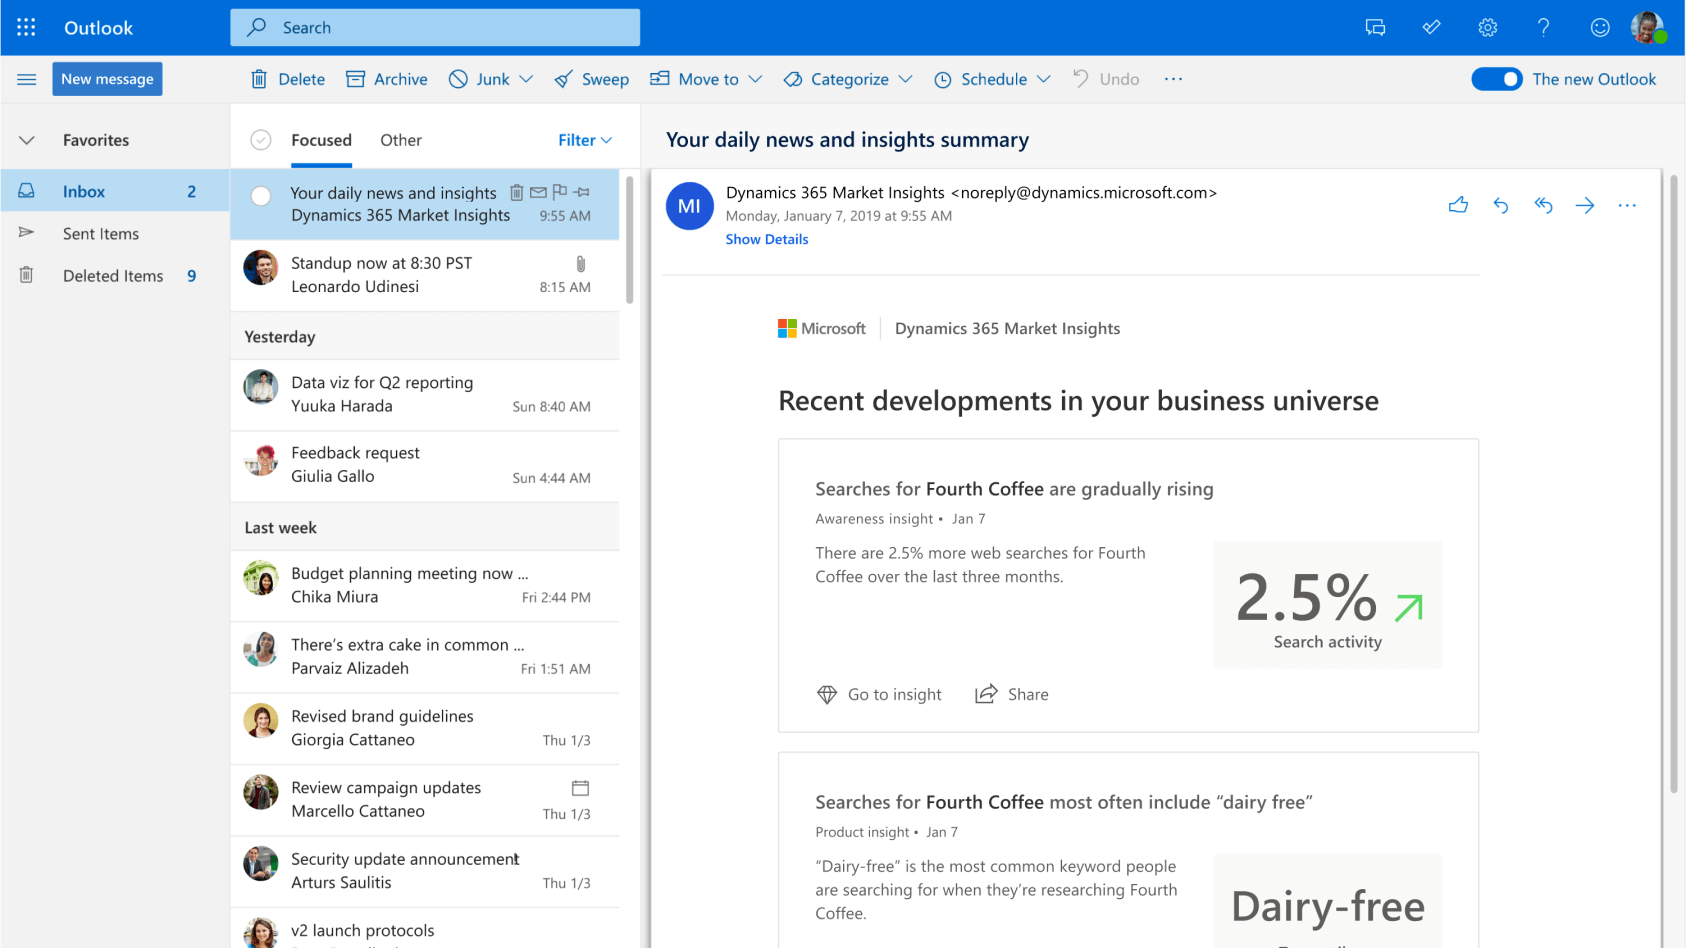 With Dynamics 365 Marketing you get daily insights in your marketing activities via e-mail